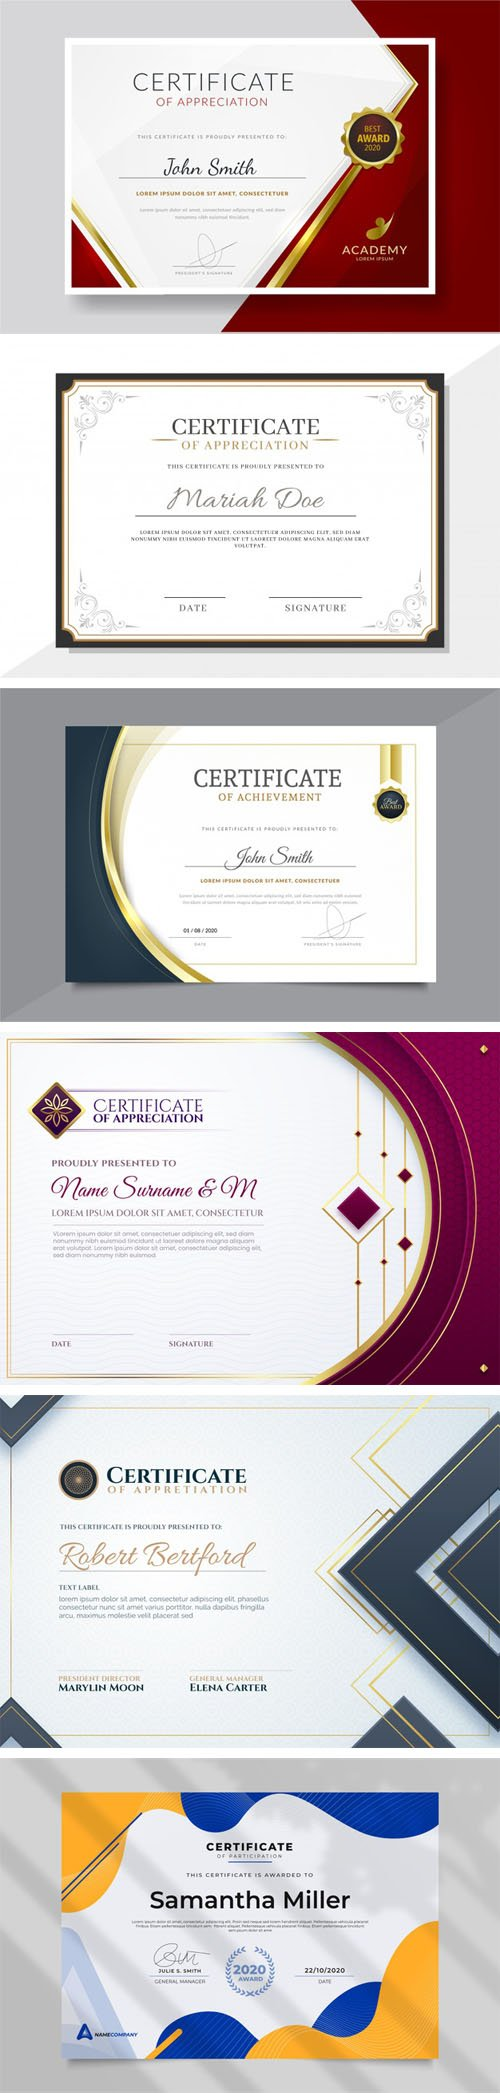 6 Modern Certificate & Diploma Templates in Vector